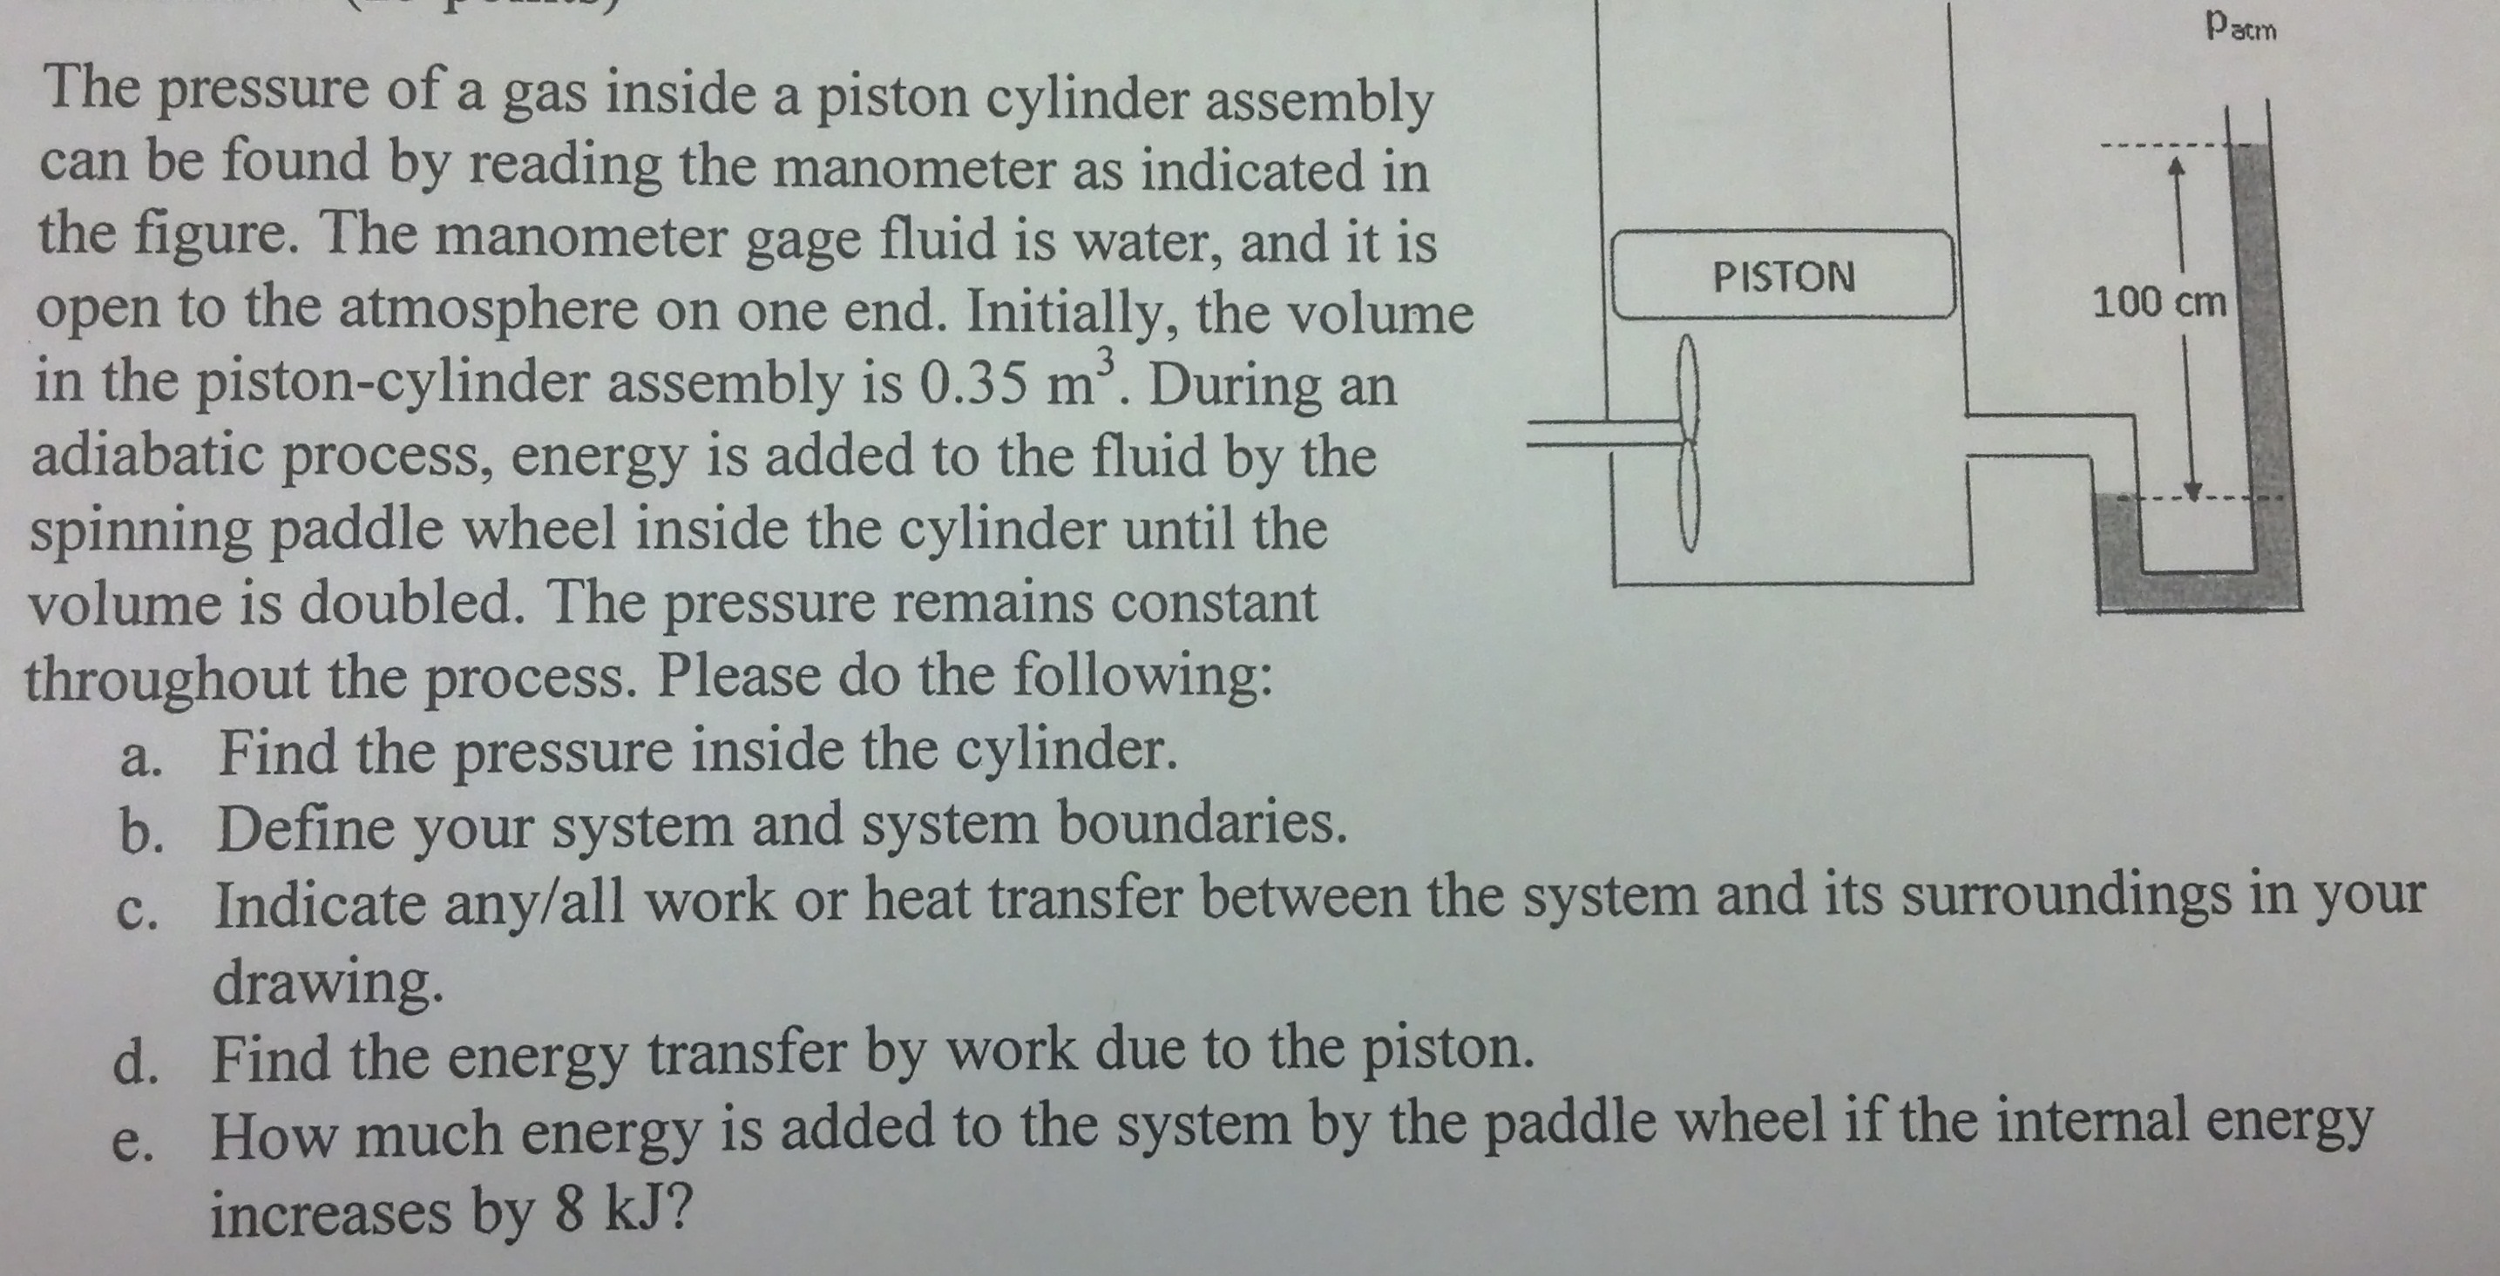 The pressure of a gas inside a piston cylinder ass